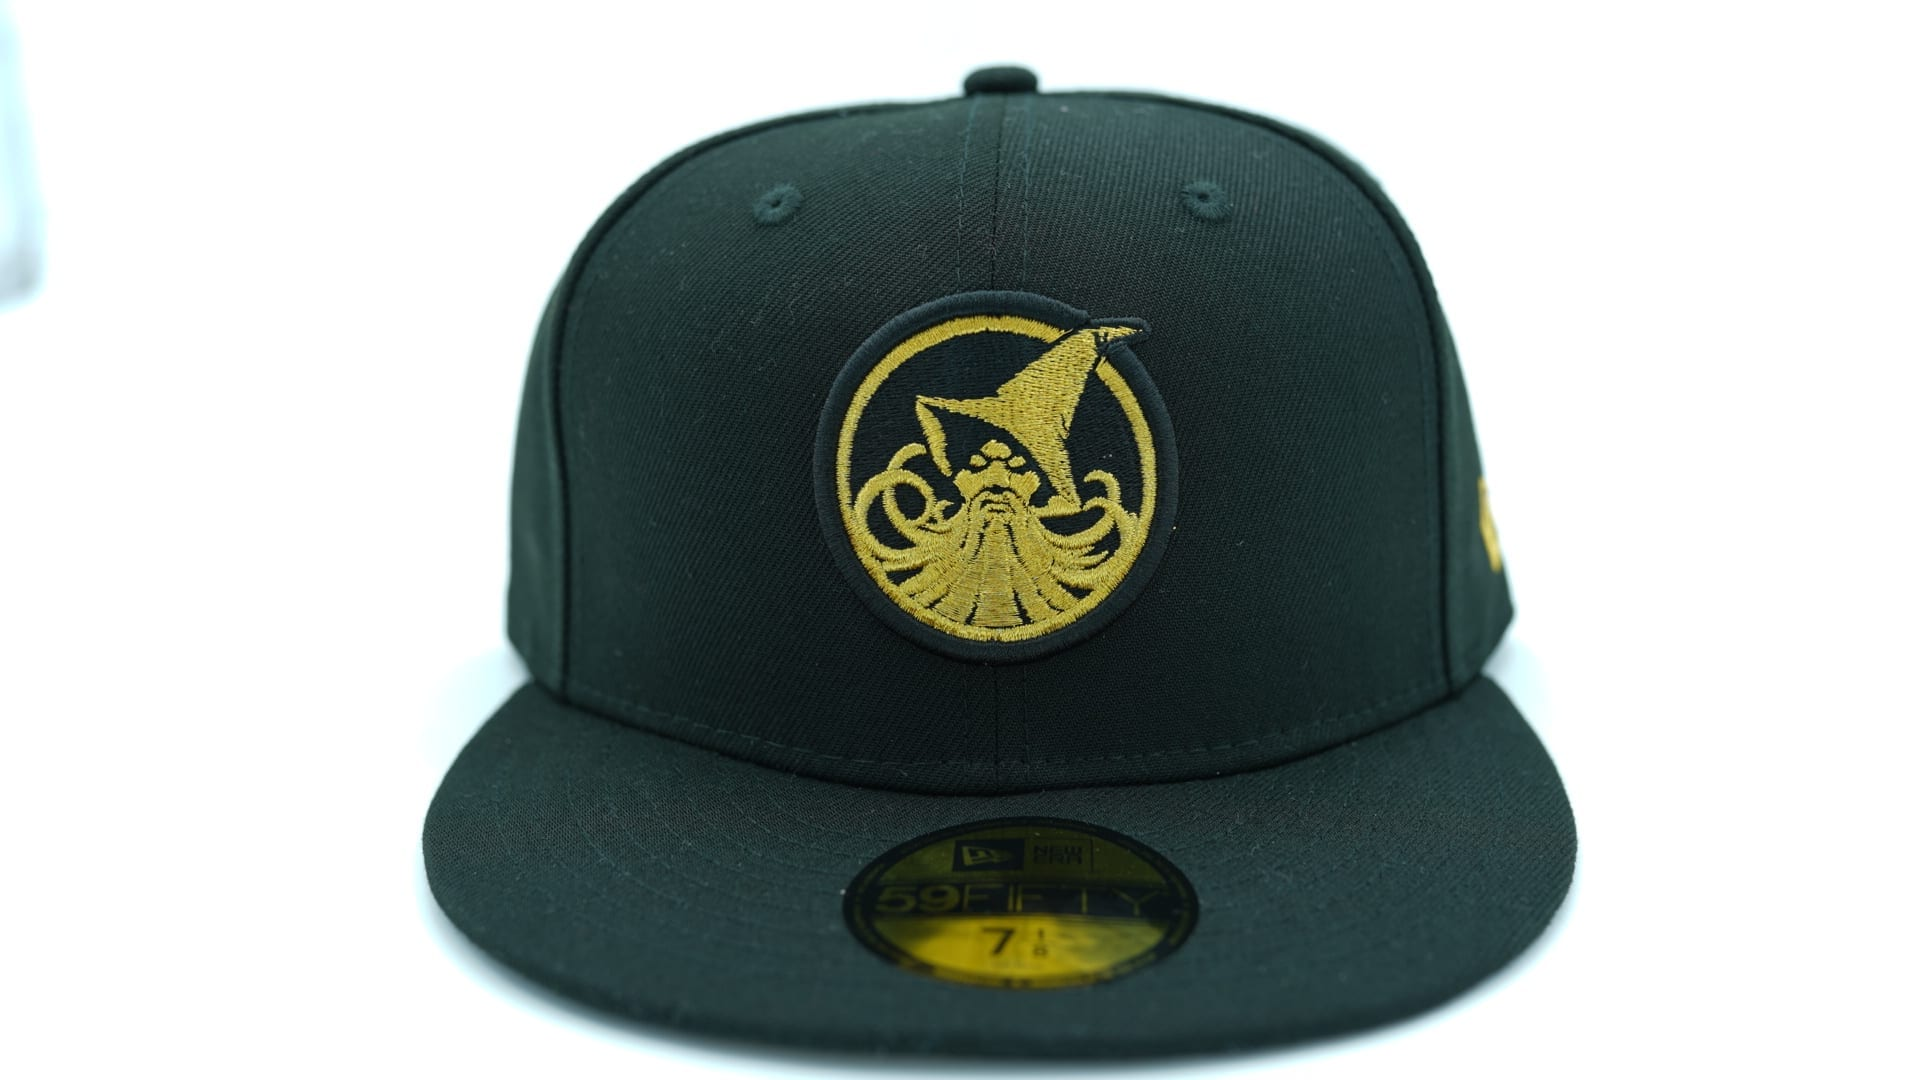 New Fitteds @ ECAPCITY: Custom NEW ERA 59Fifty Fitted Caps ...